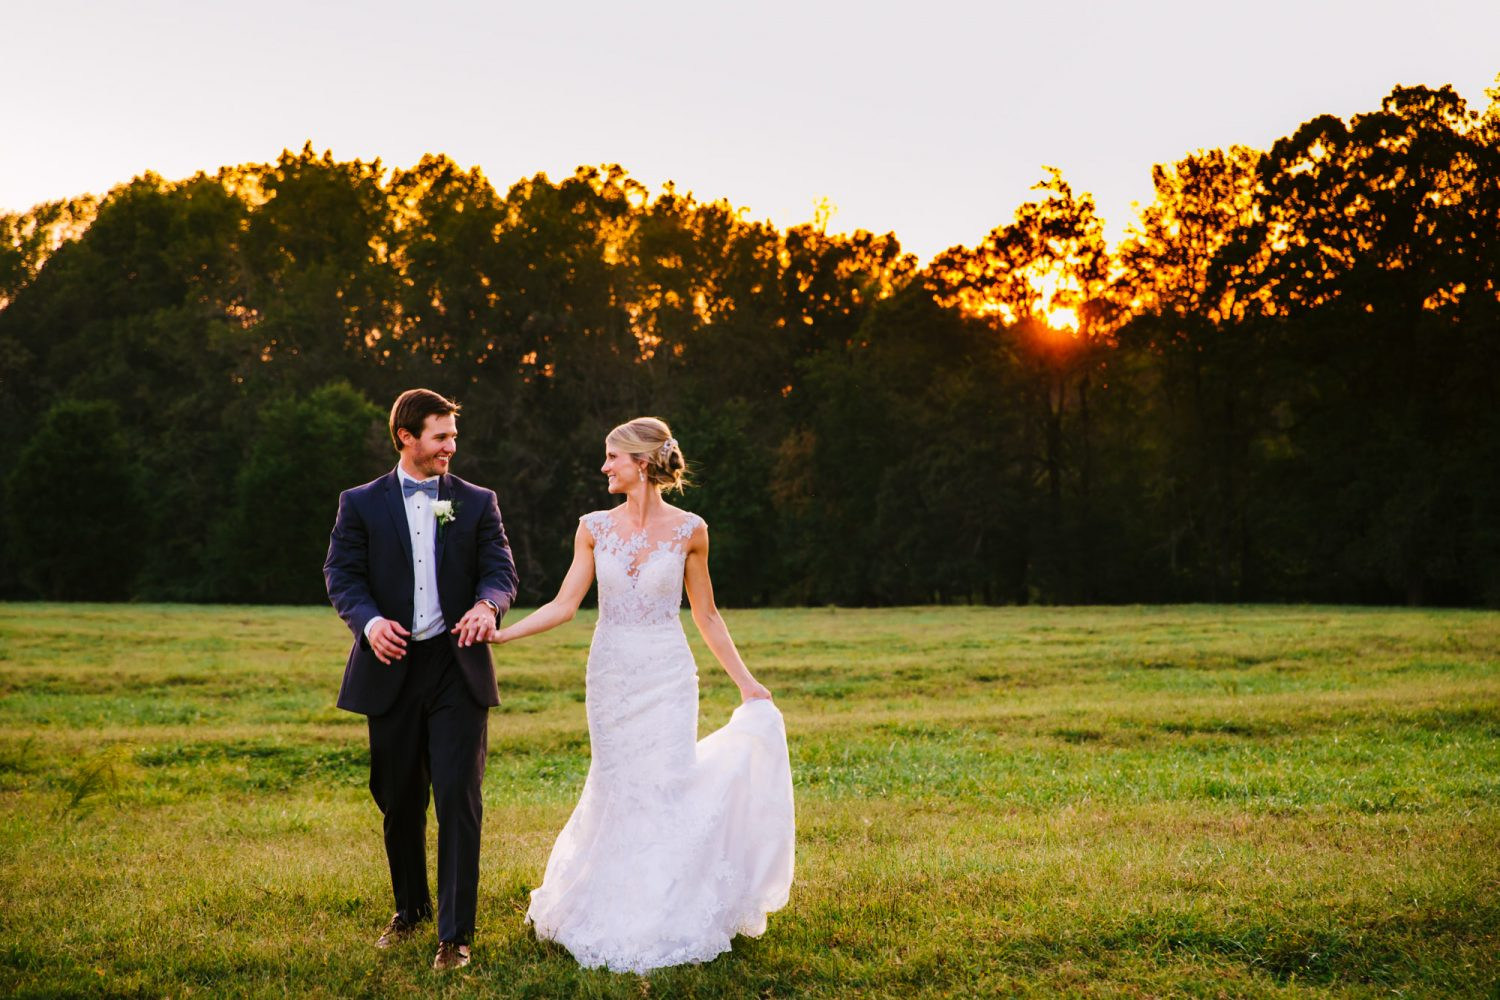 Waynesville, NC Wedding Photography | Bride and Groom Walking in the Field at Sunset